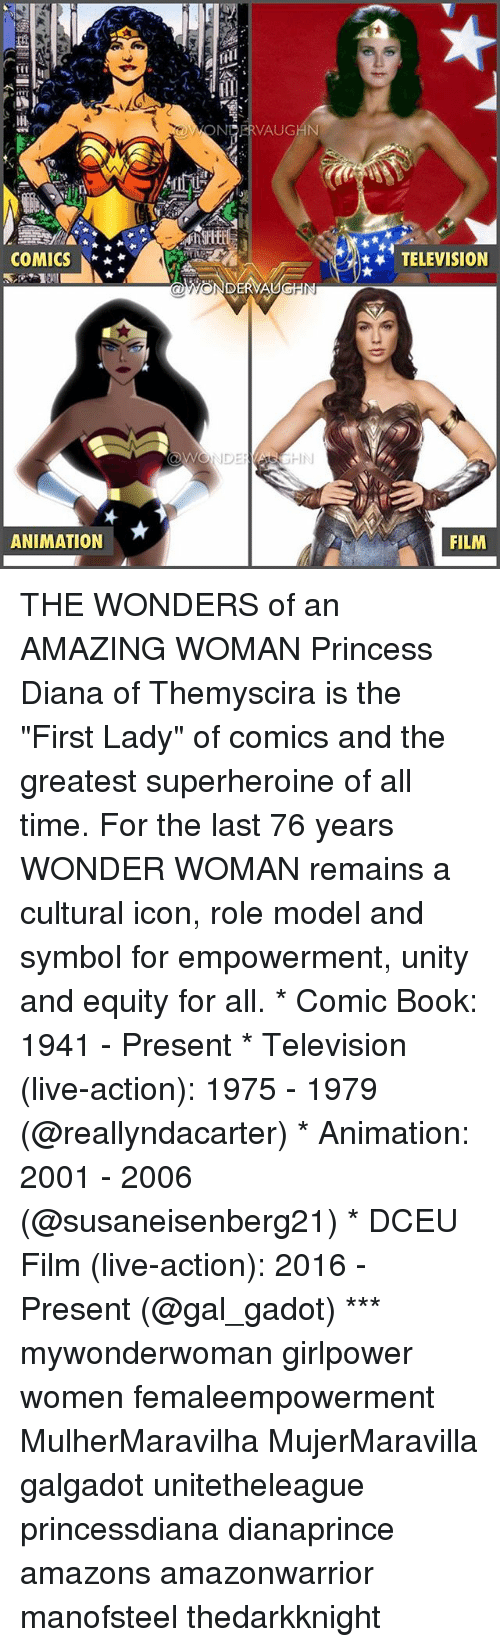 """Memes, Book, and Live: OWONERVAUGHN  COMICS  TELEVISION  ANIMATION  FILM THE WONDERS of an AMAZING WOMAN Princess Diana of Themyscira is the """"First Lady"""" of comics and the greatest superheroine of all time. For the last 76 years WONDER WOMAN remains a cultural icon, role model and symbol for empowerment, unity and equity for all. * Comic Book: 1941 - Present * Television (live-action): 1975 - 1979 (@reallyndacarter) * Animation: 2001 - 2006 (@susaneisenberg21) * DCEU Film (live-action): 2016 - Present (@gal_gadot) *** mywonderwoman girlpower women femaleempowerment MulherMaravilha MujerMaravilla galgadot unitetheleague princessdiana dianaprince amazons amazonwarrior manofsteel thedarkknight"""